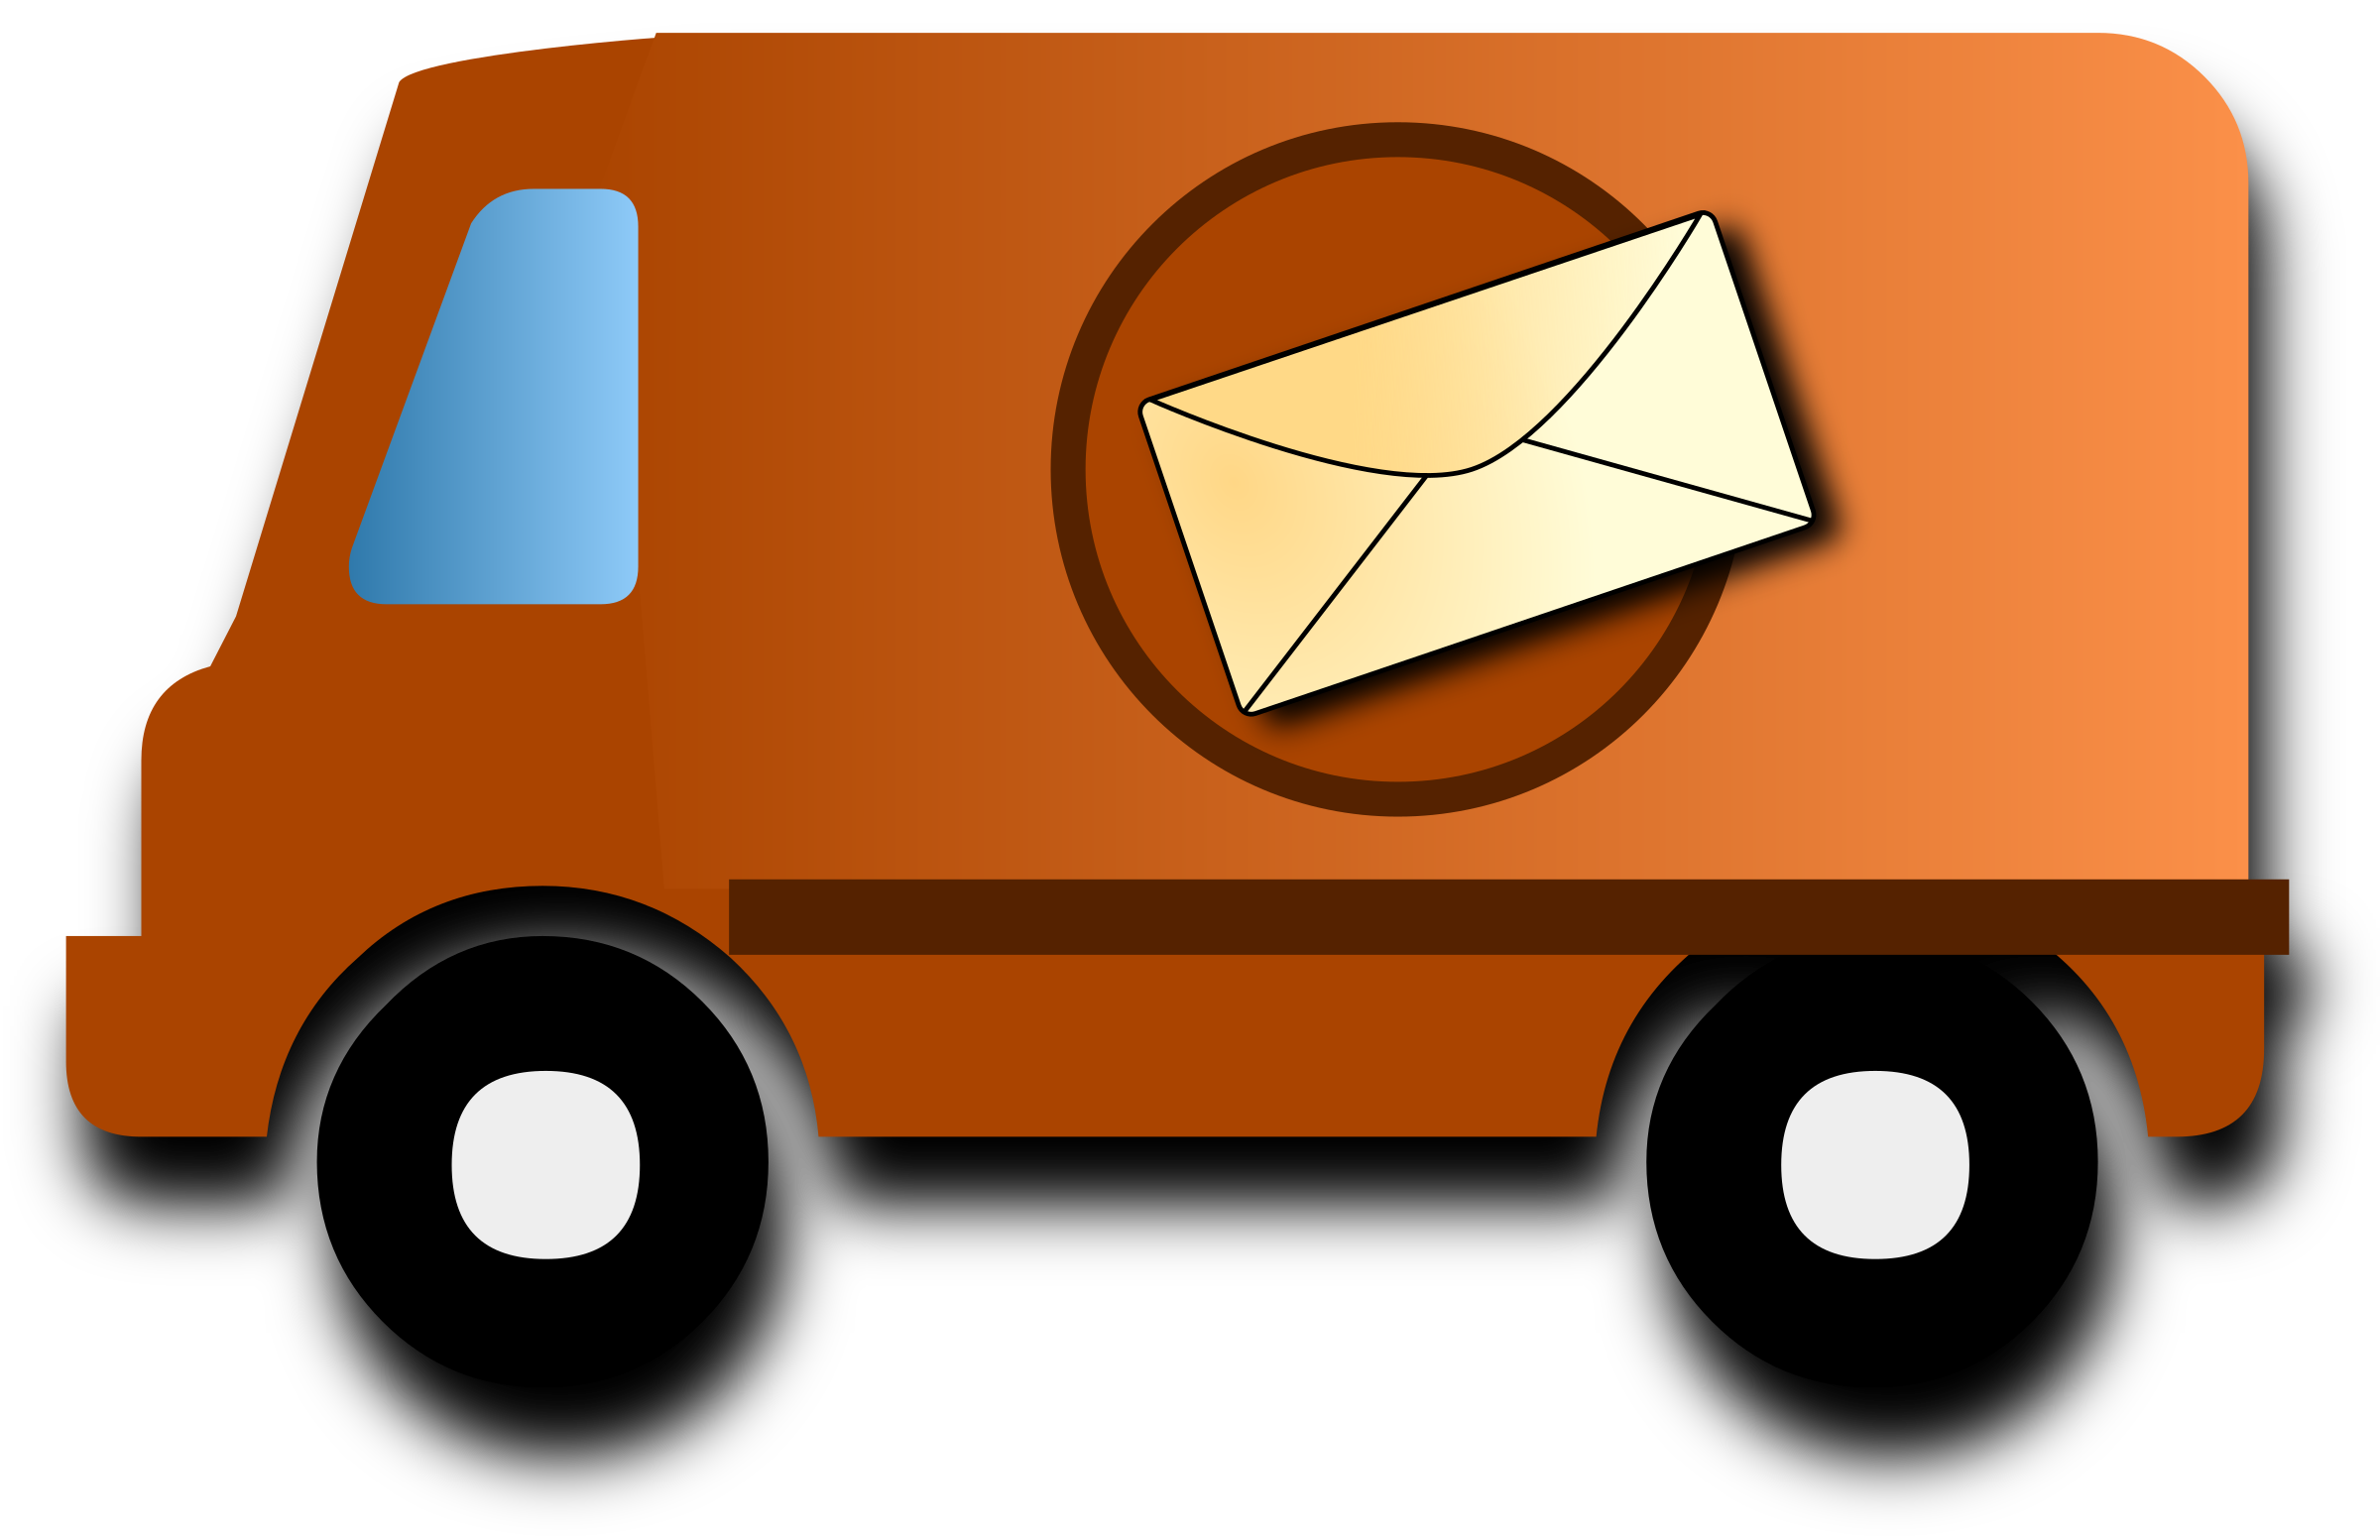 Mail van by krypt